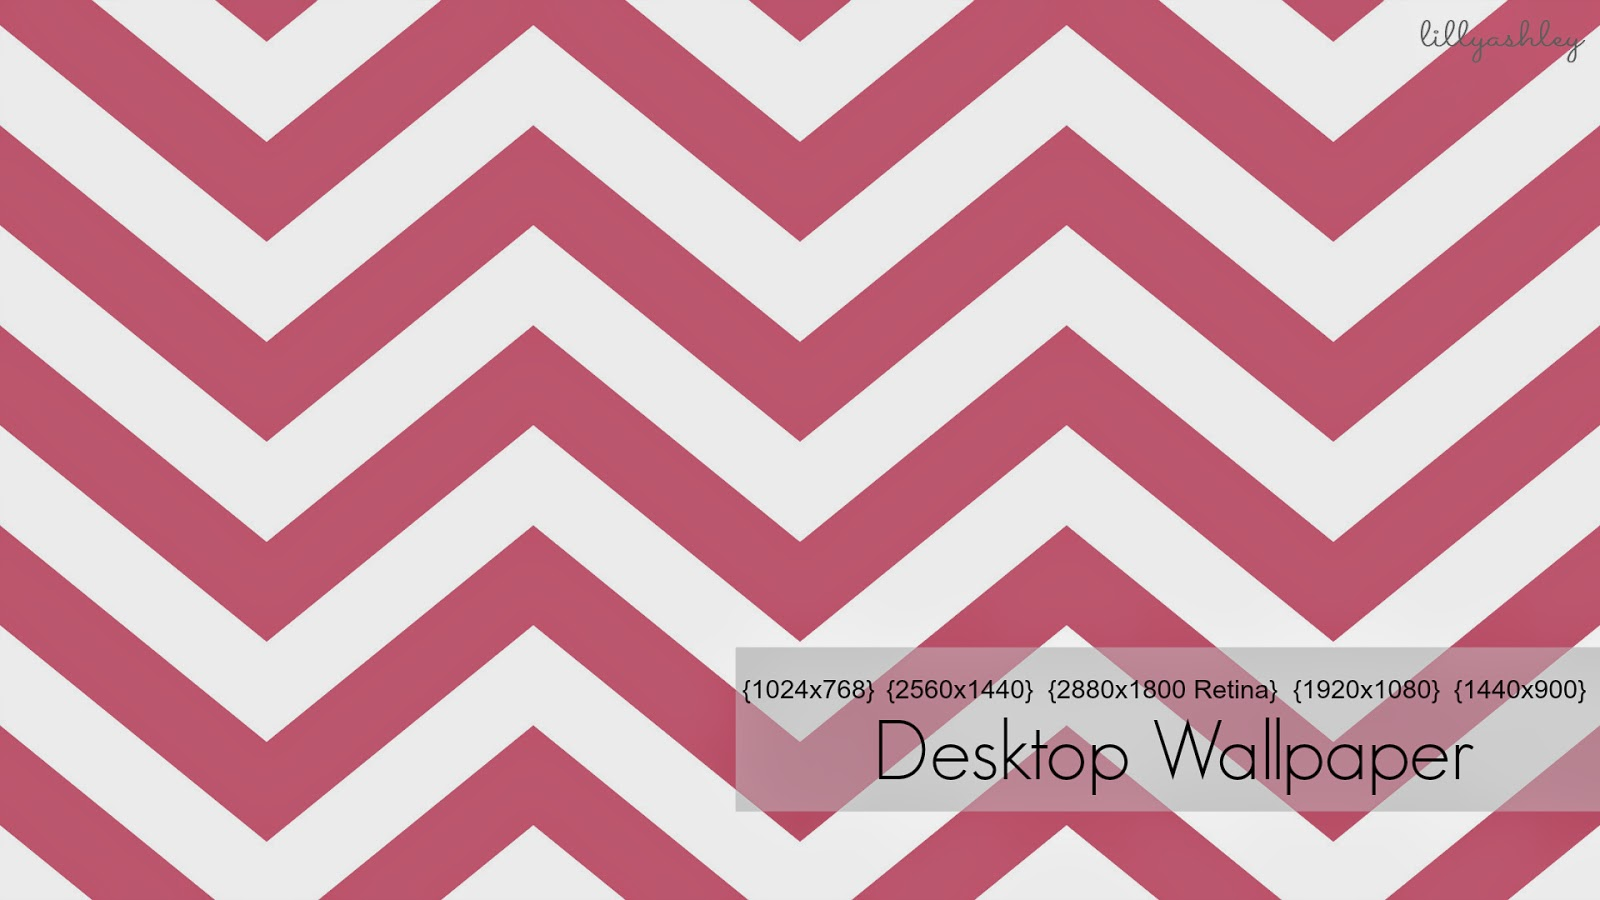 Desktop Wallpaper Chevron for PC Mac